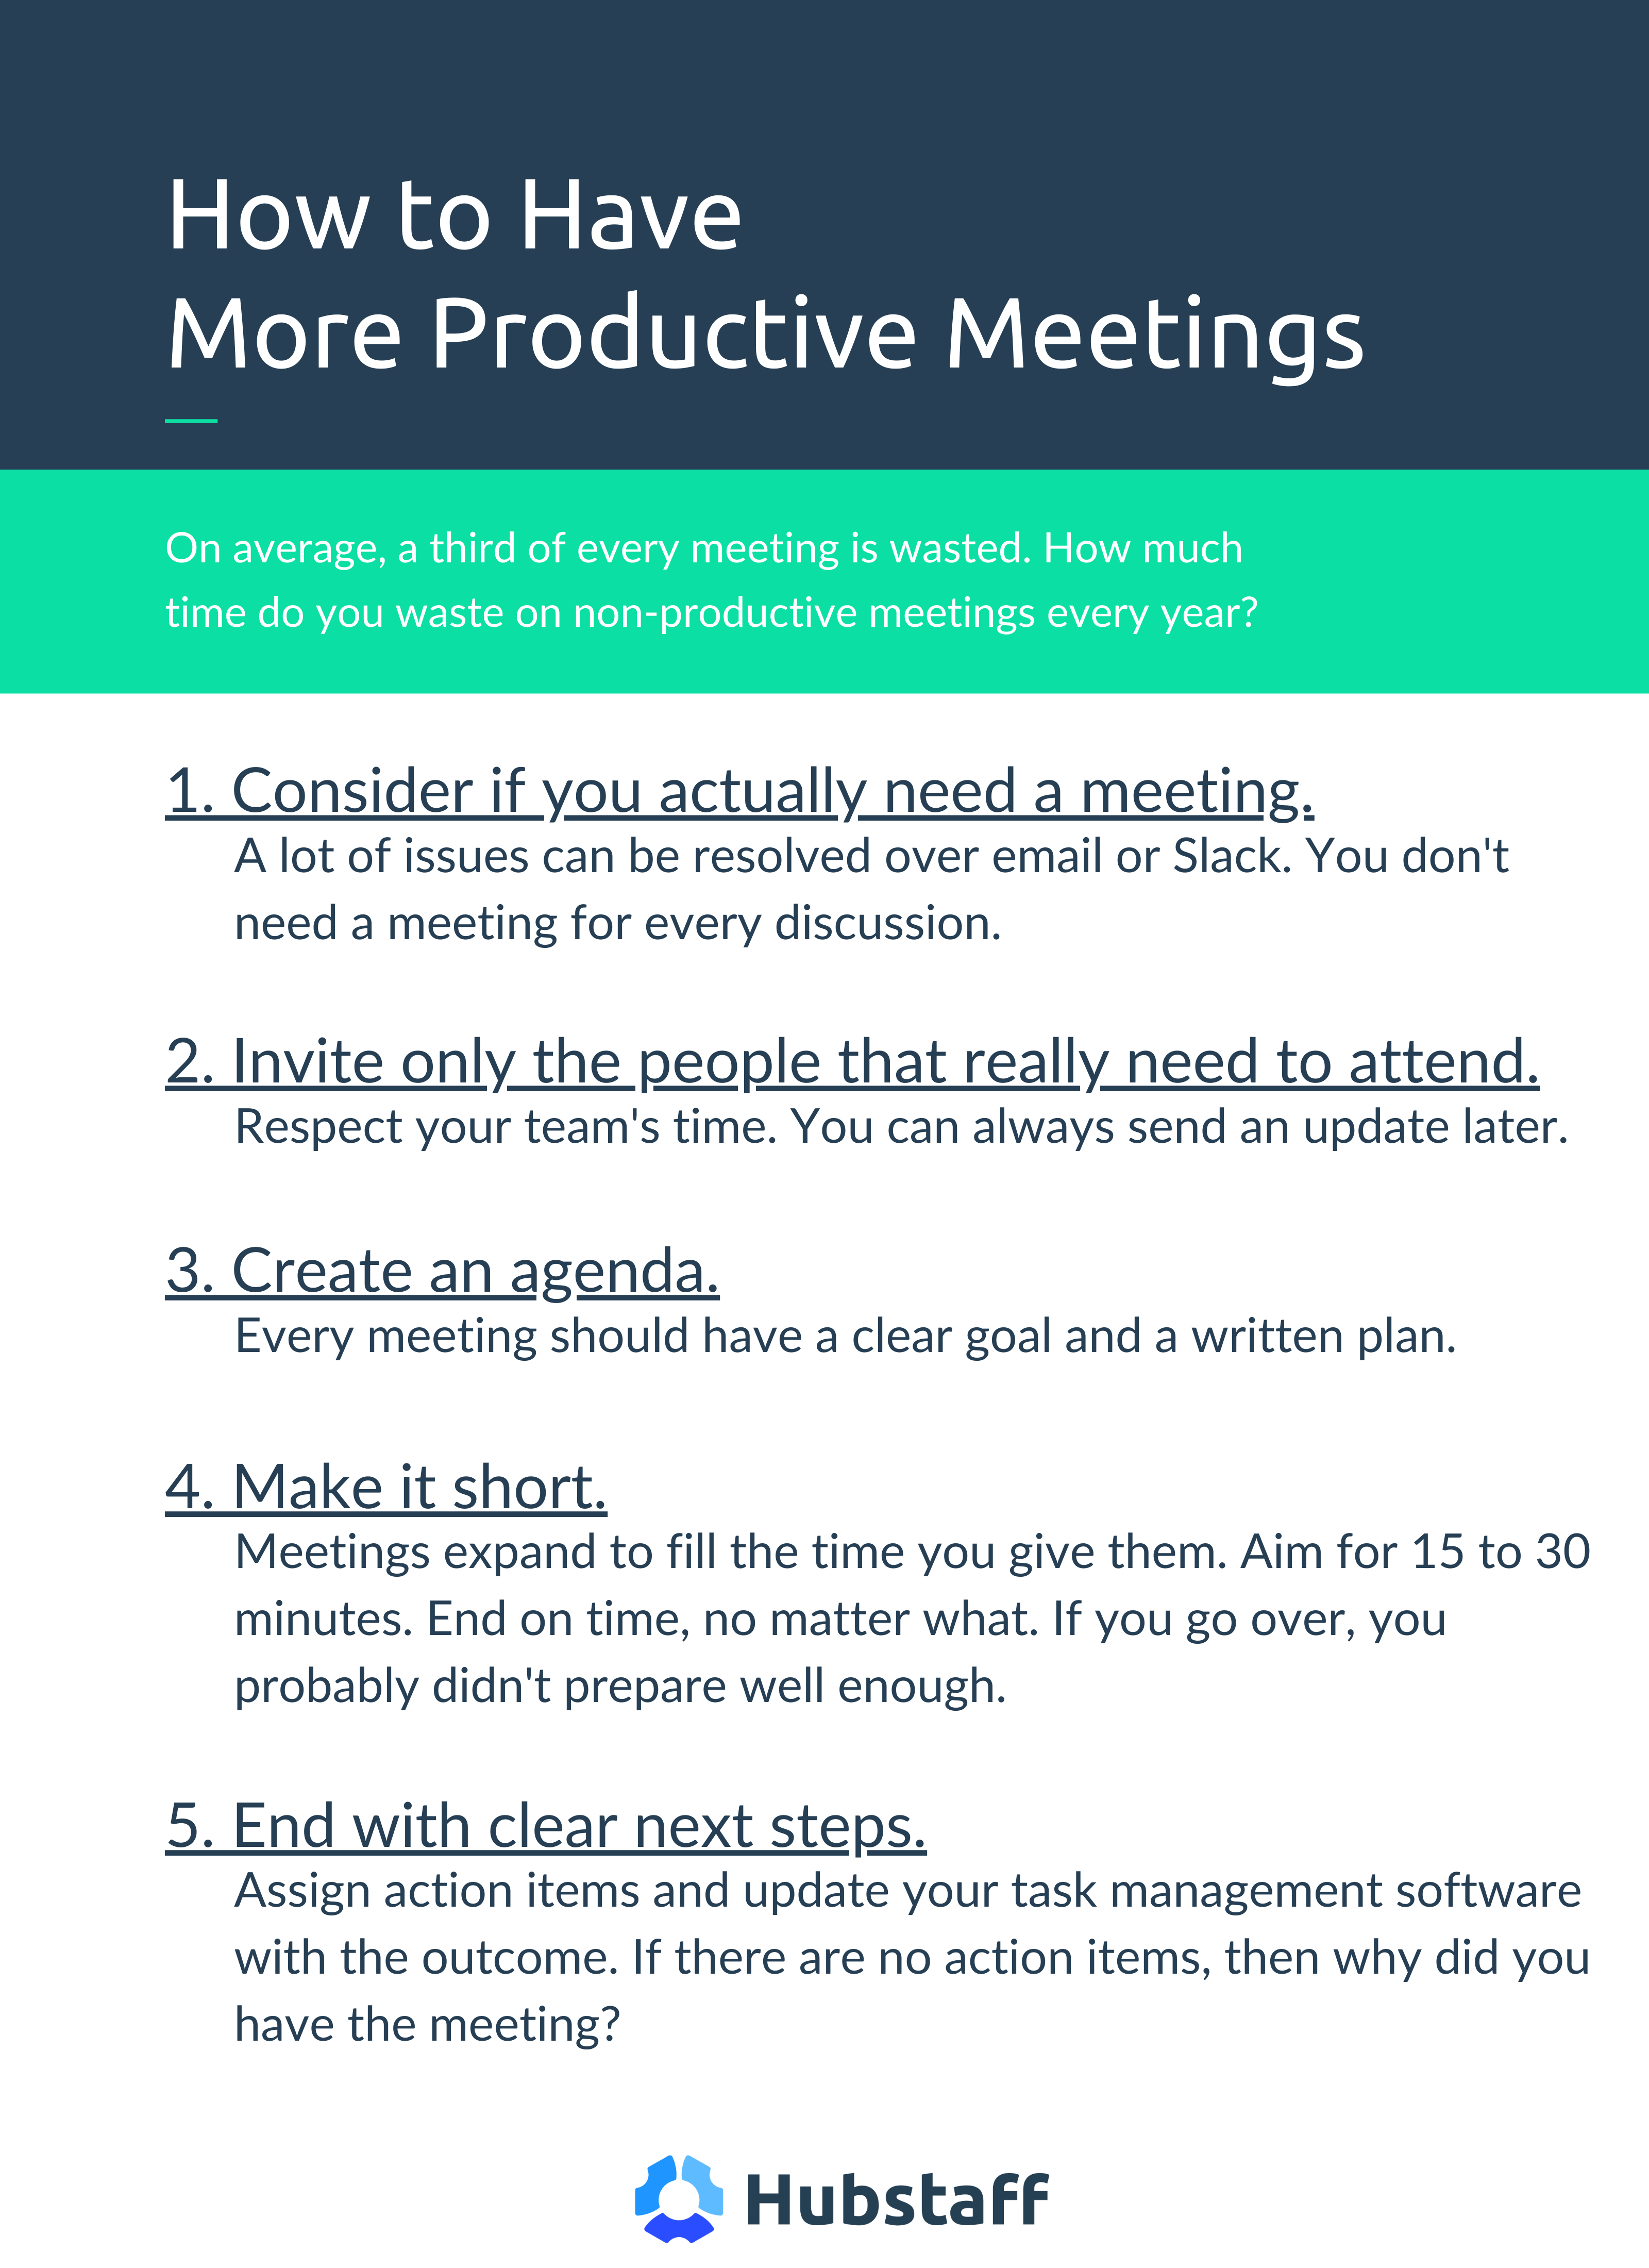 How to have productive meetings